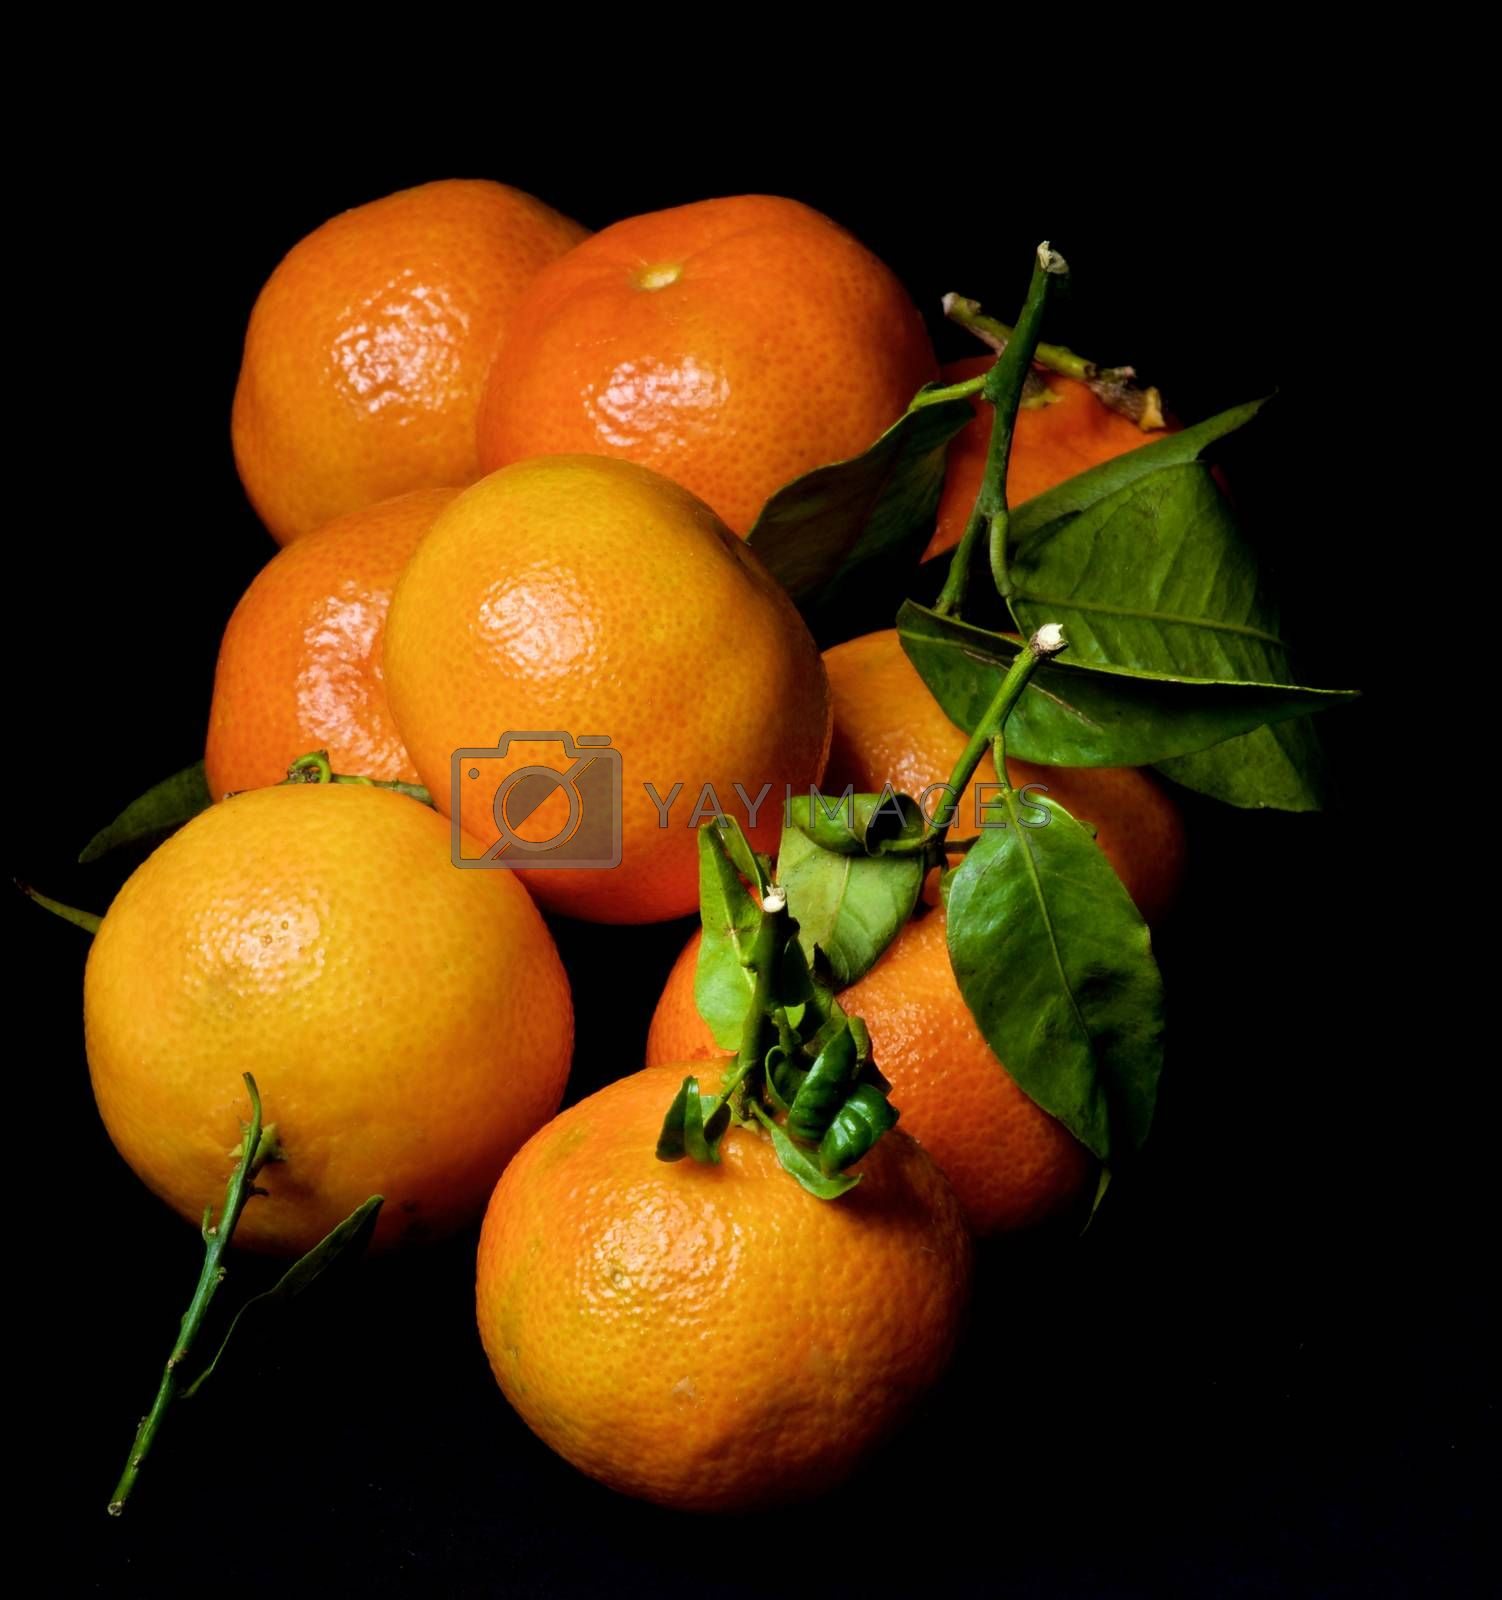 Fresh Ripe Tangerines with Leafs and Stems isolated on Black background. Focus on Foreground